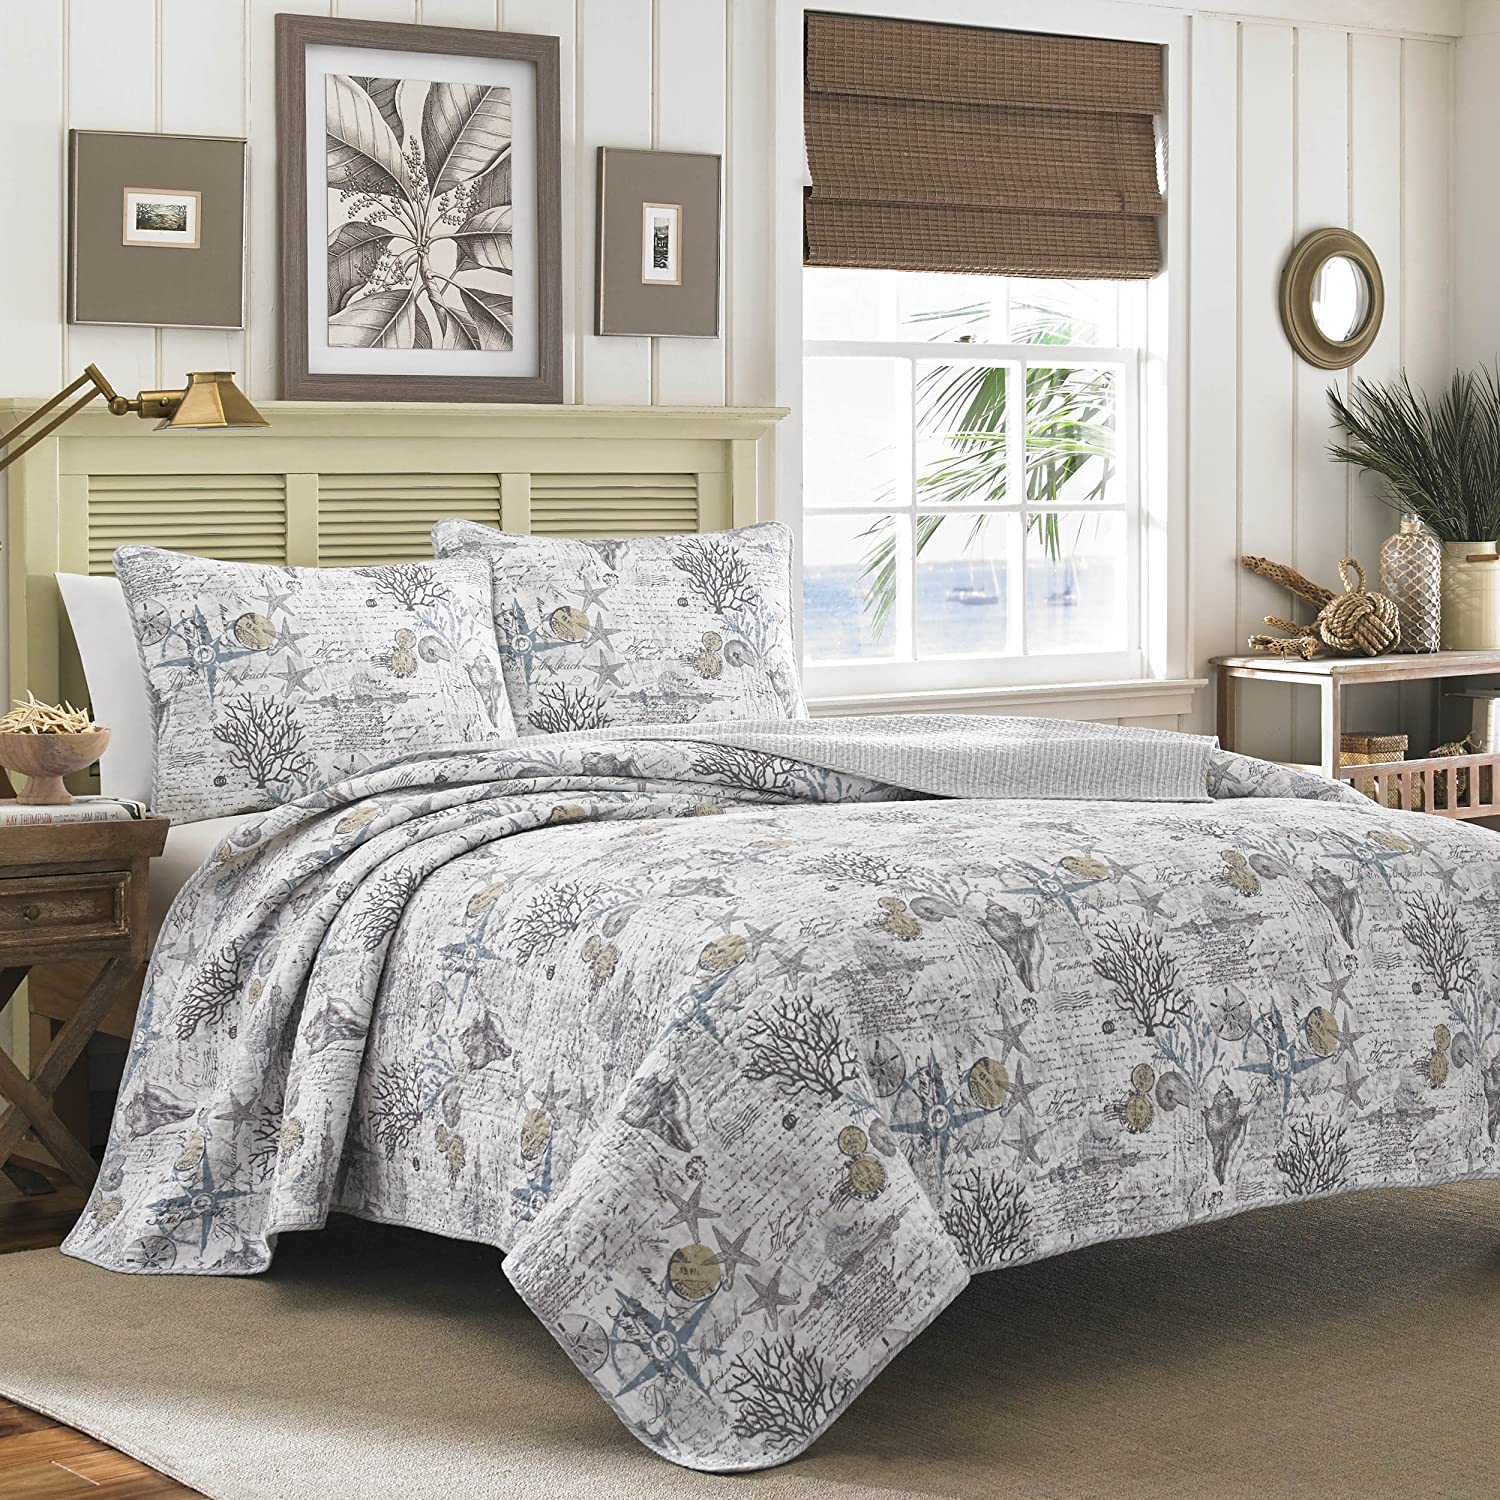 Amazon.com: Tommy Bahama Quilt Set, Full/Queen, Beach Bliss: Home U0026 Kitchen